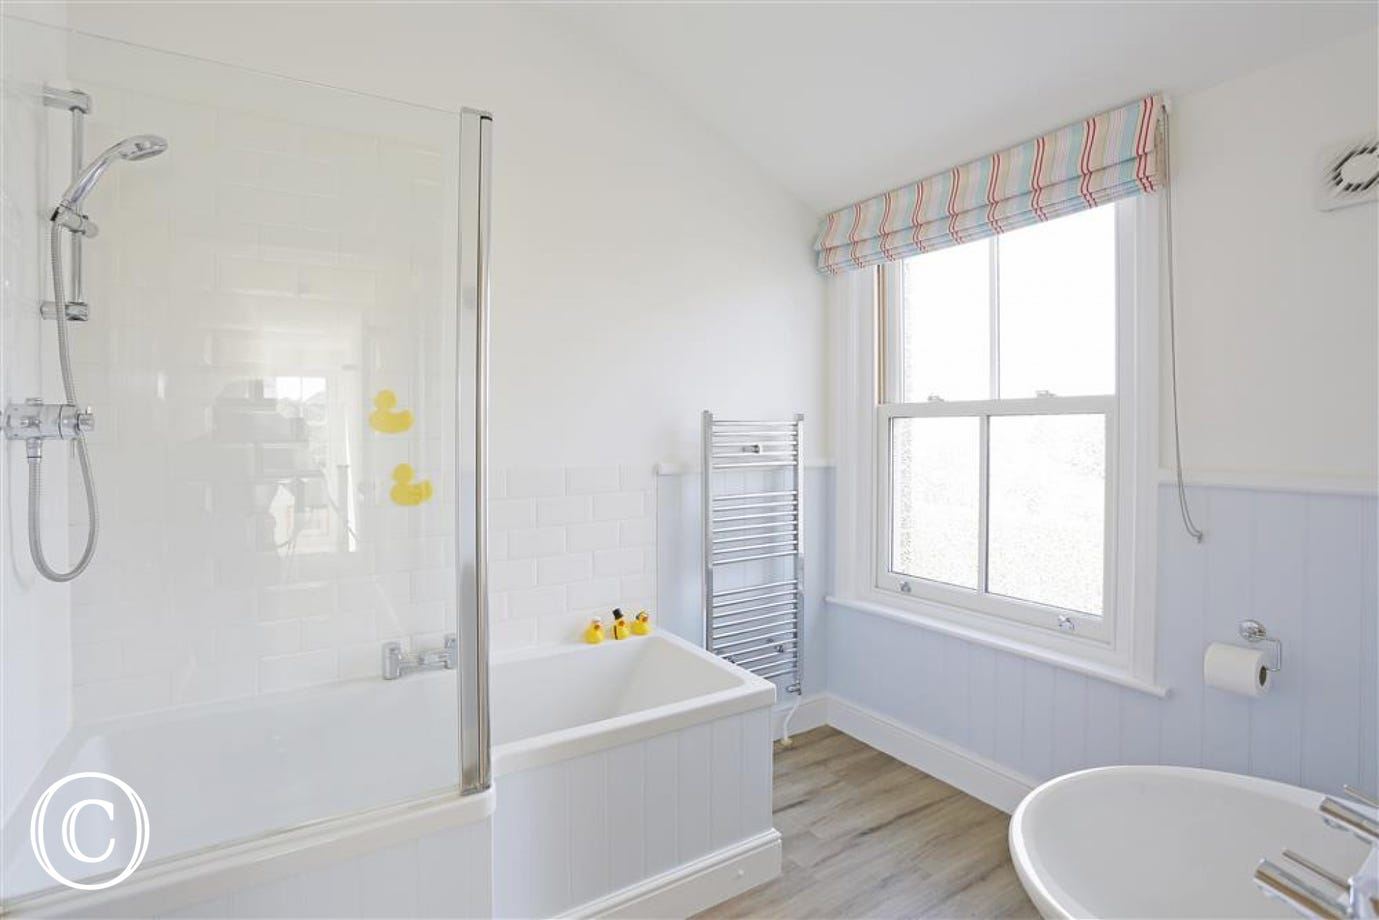 A superb family sized bathroom with trendy bath complete with overbath shower.